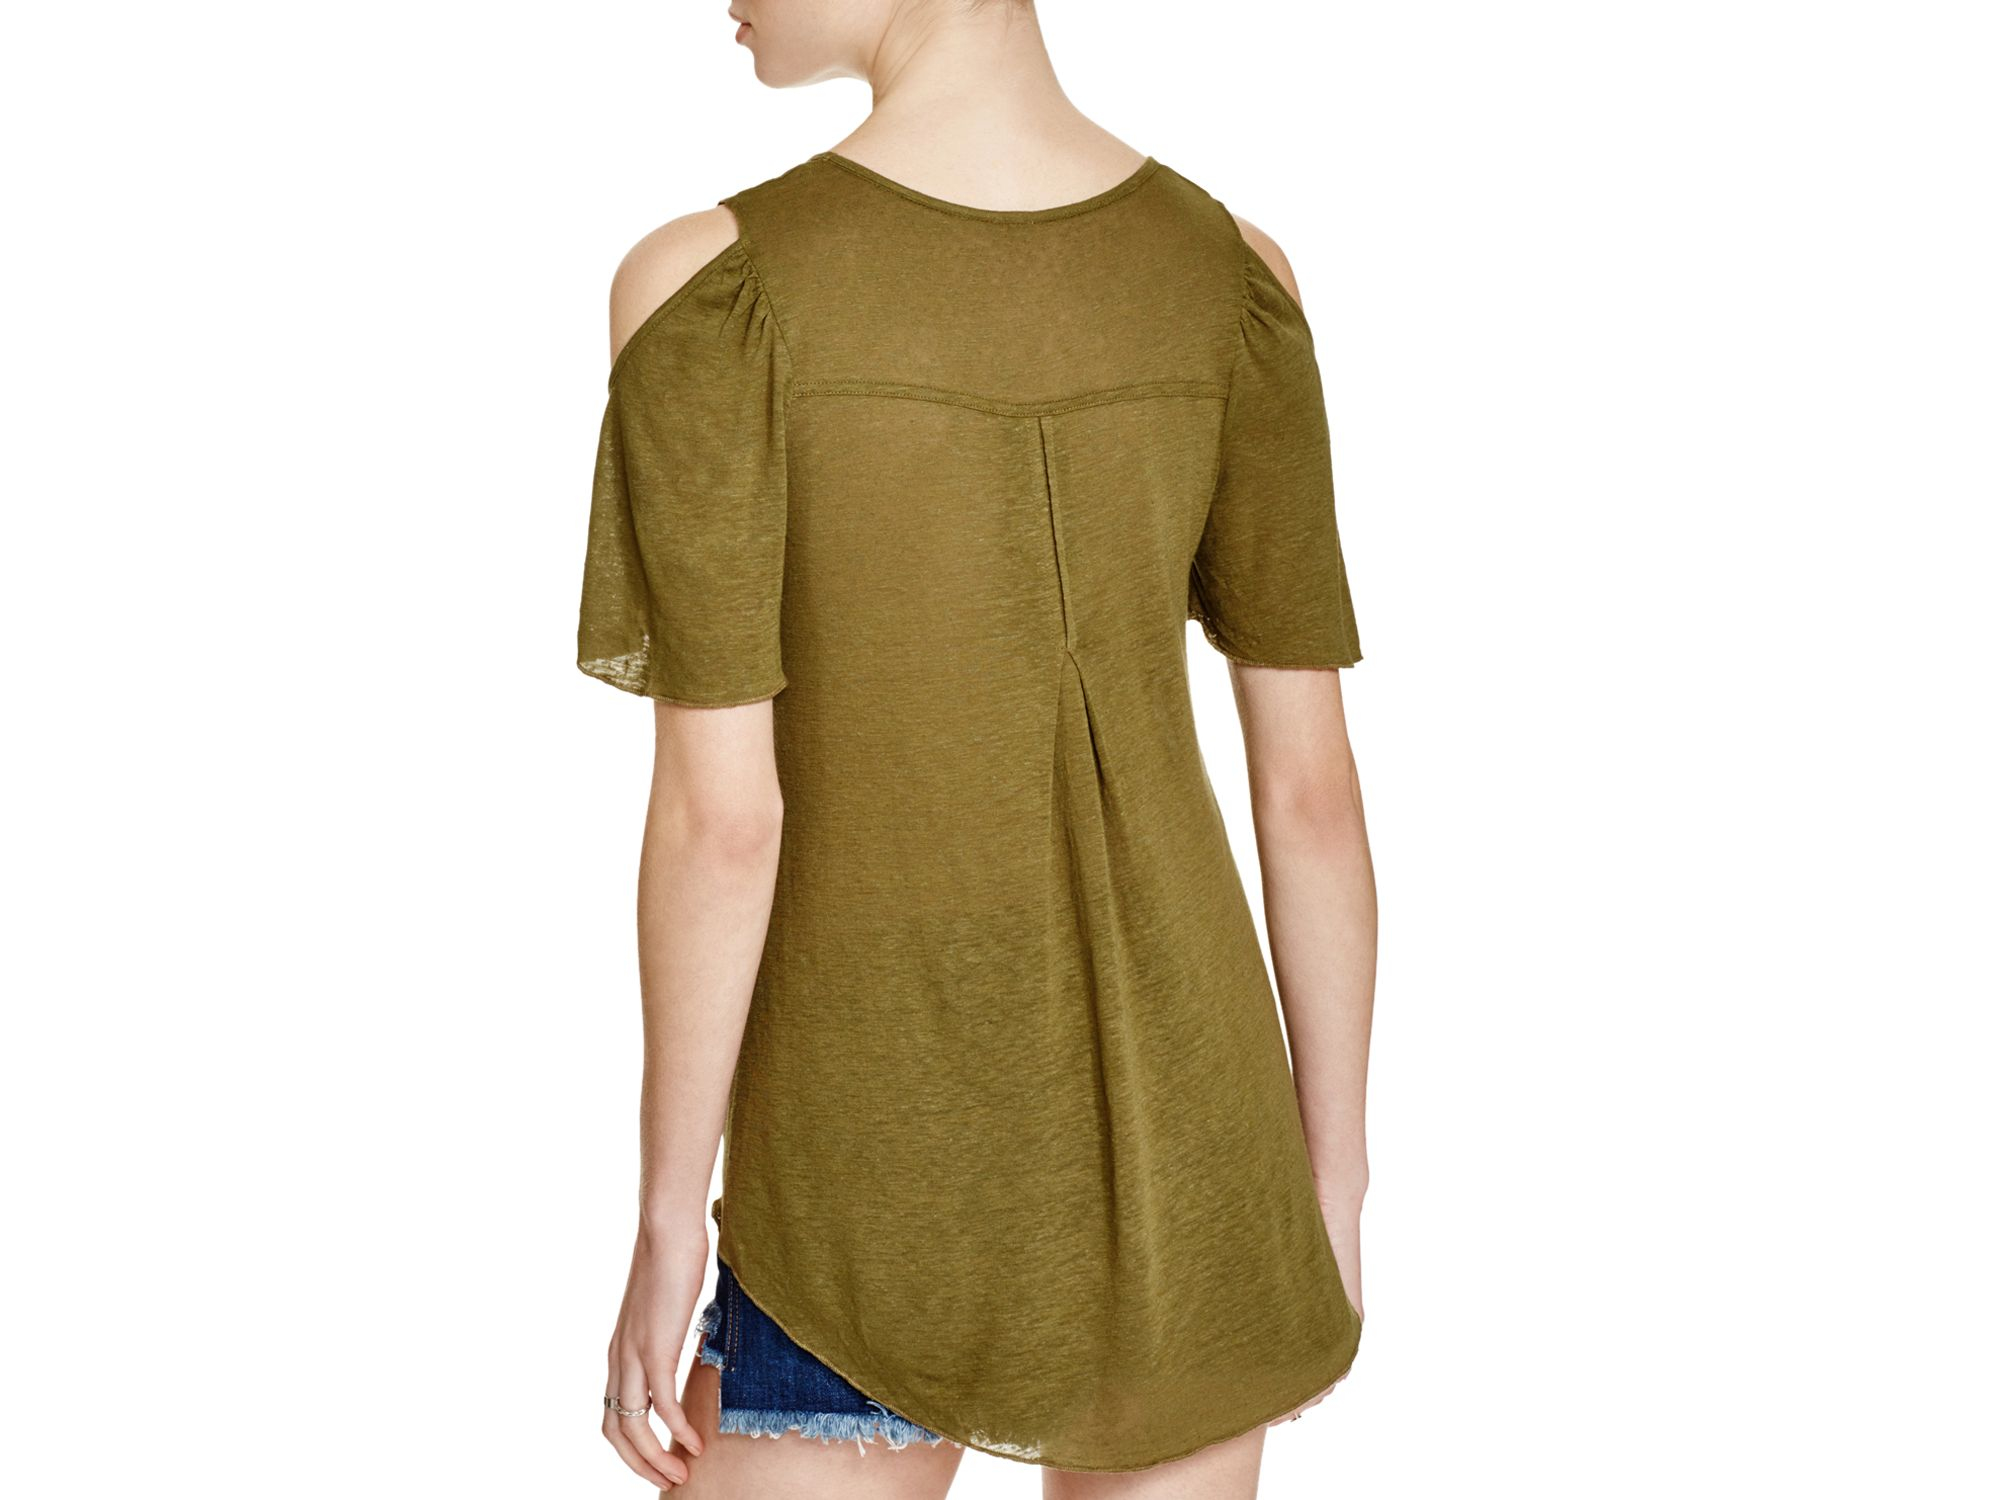 336a32c135200 Gallery. Previously sold at  Bloomingdale s · Women s Cold Shoulder T Shirts  ...